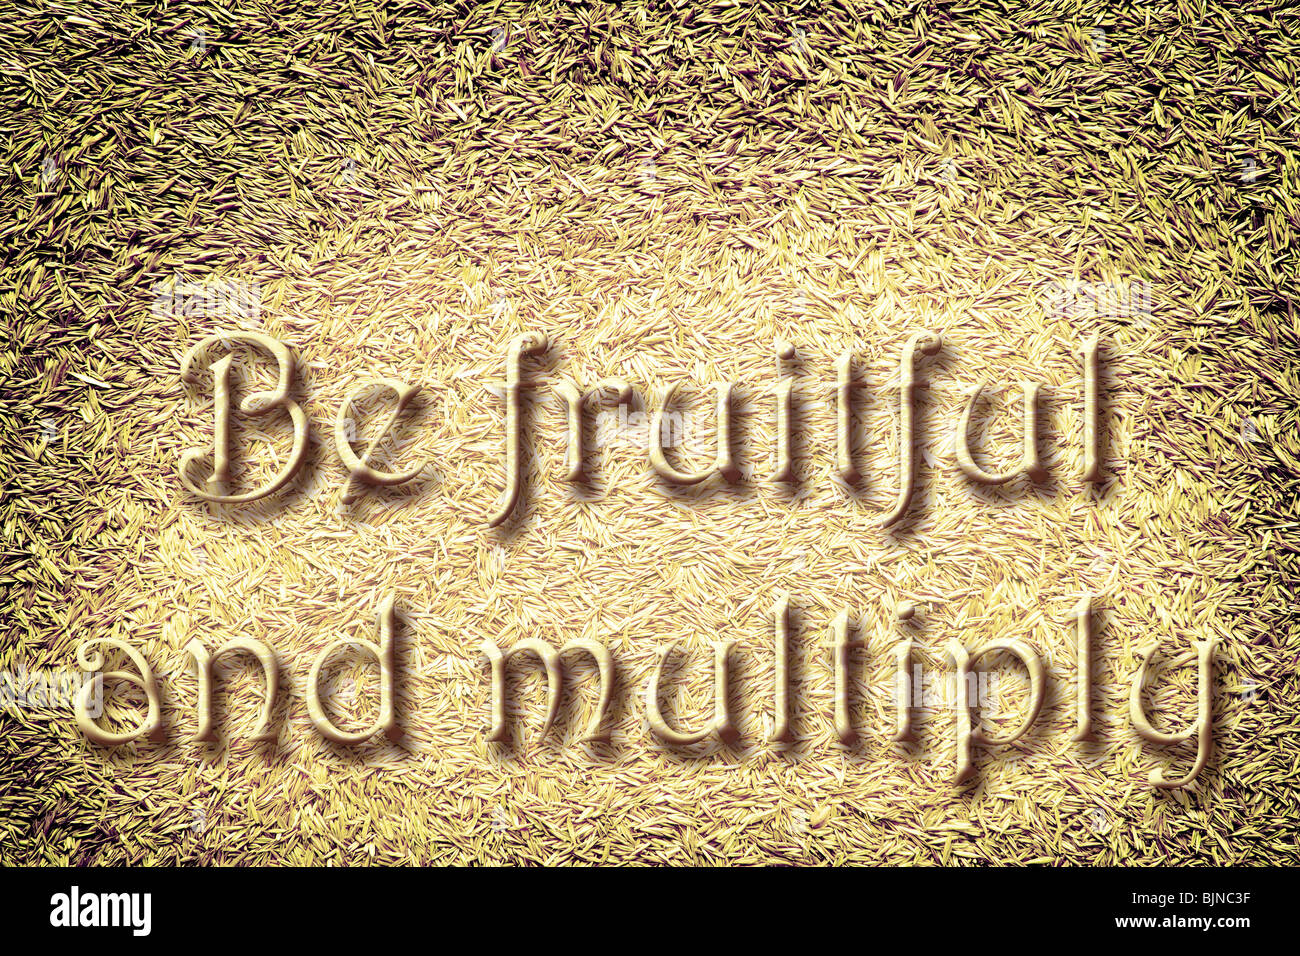 Many seeds under the commandment 'Be fruitful and multiply...' - Stock Image